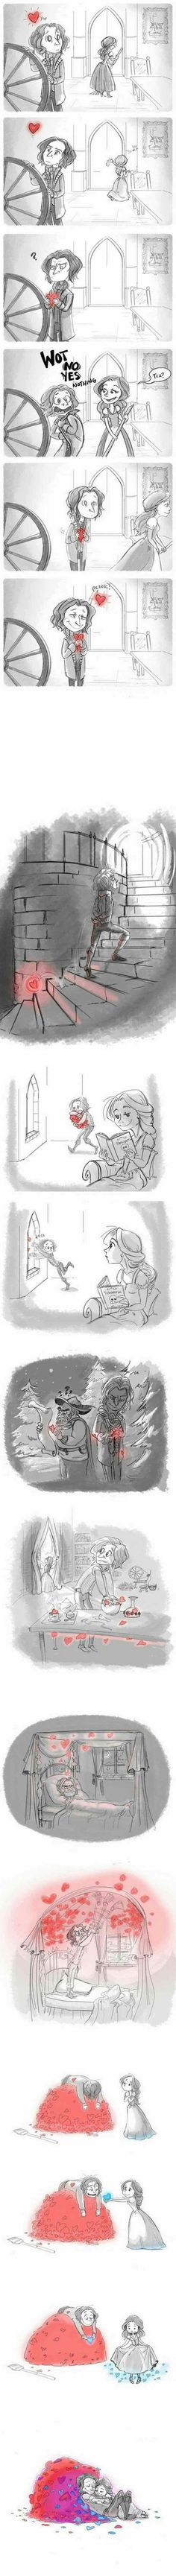 Once Upon A Time - AWW - - Rumplestiltskin falls in love This is a lovely comic about falling in love it made my heart hurt with how cute it is! -Laurel The post Once Upon A Time appeared first on Gag Dad. Rage Comic, My Heart Hurts, Cute Stories, Short Stories, Short Comics, Ouat, Once Upon A Time, Funny Cute, Comic Strips